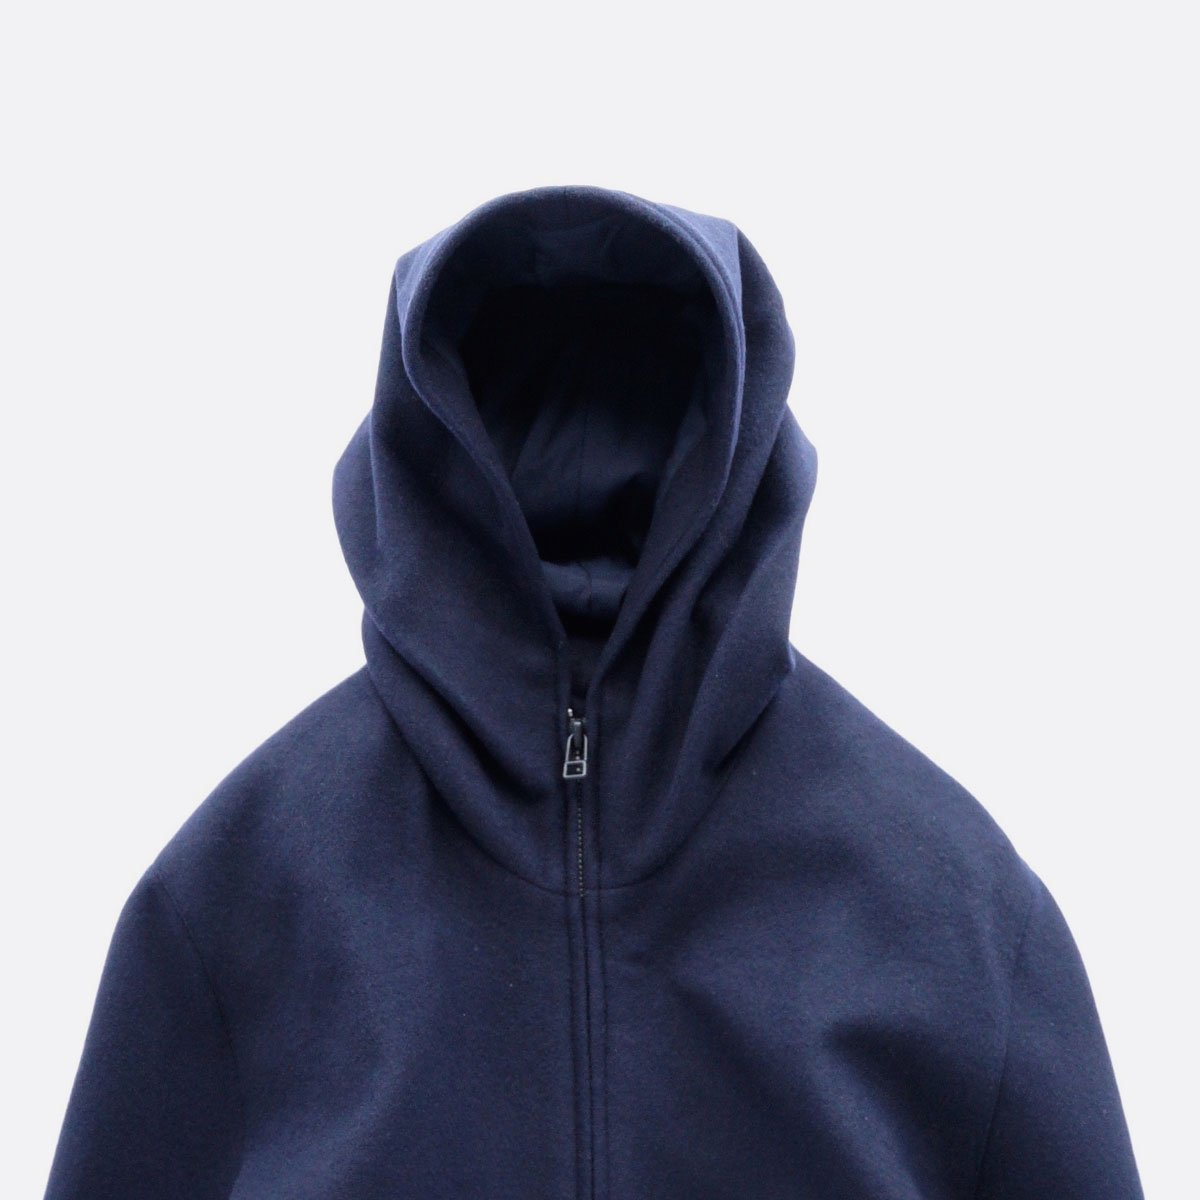 FIRMUM SUPER 100S WOOL LODEN LIKE CLOTH HOOD JACKET (NAVY)3